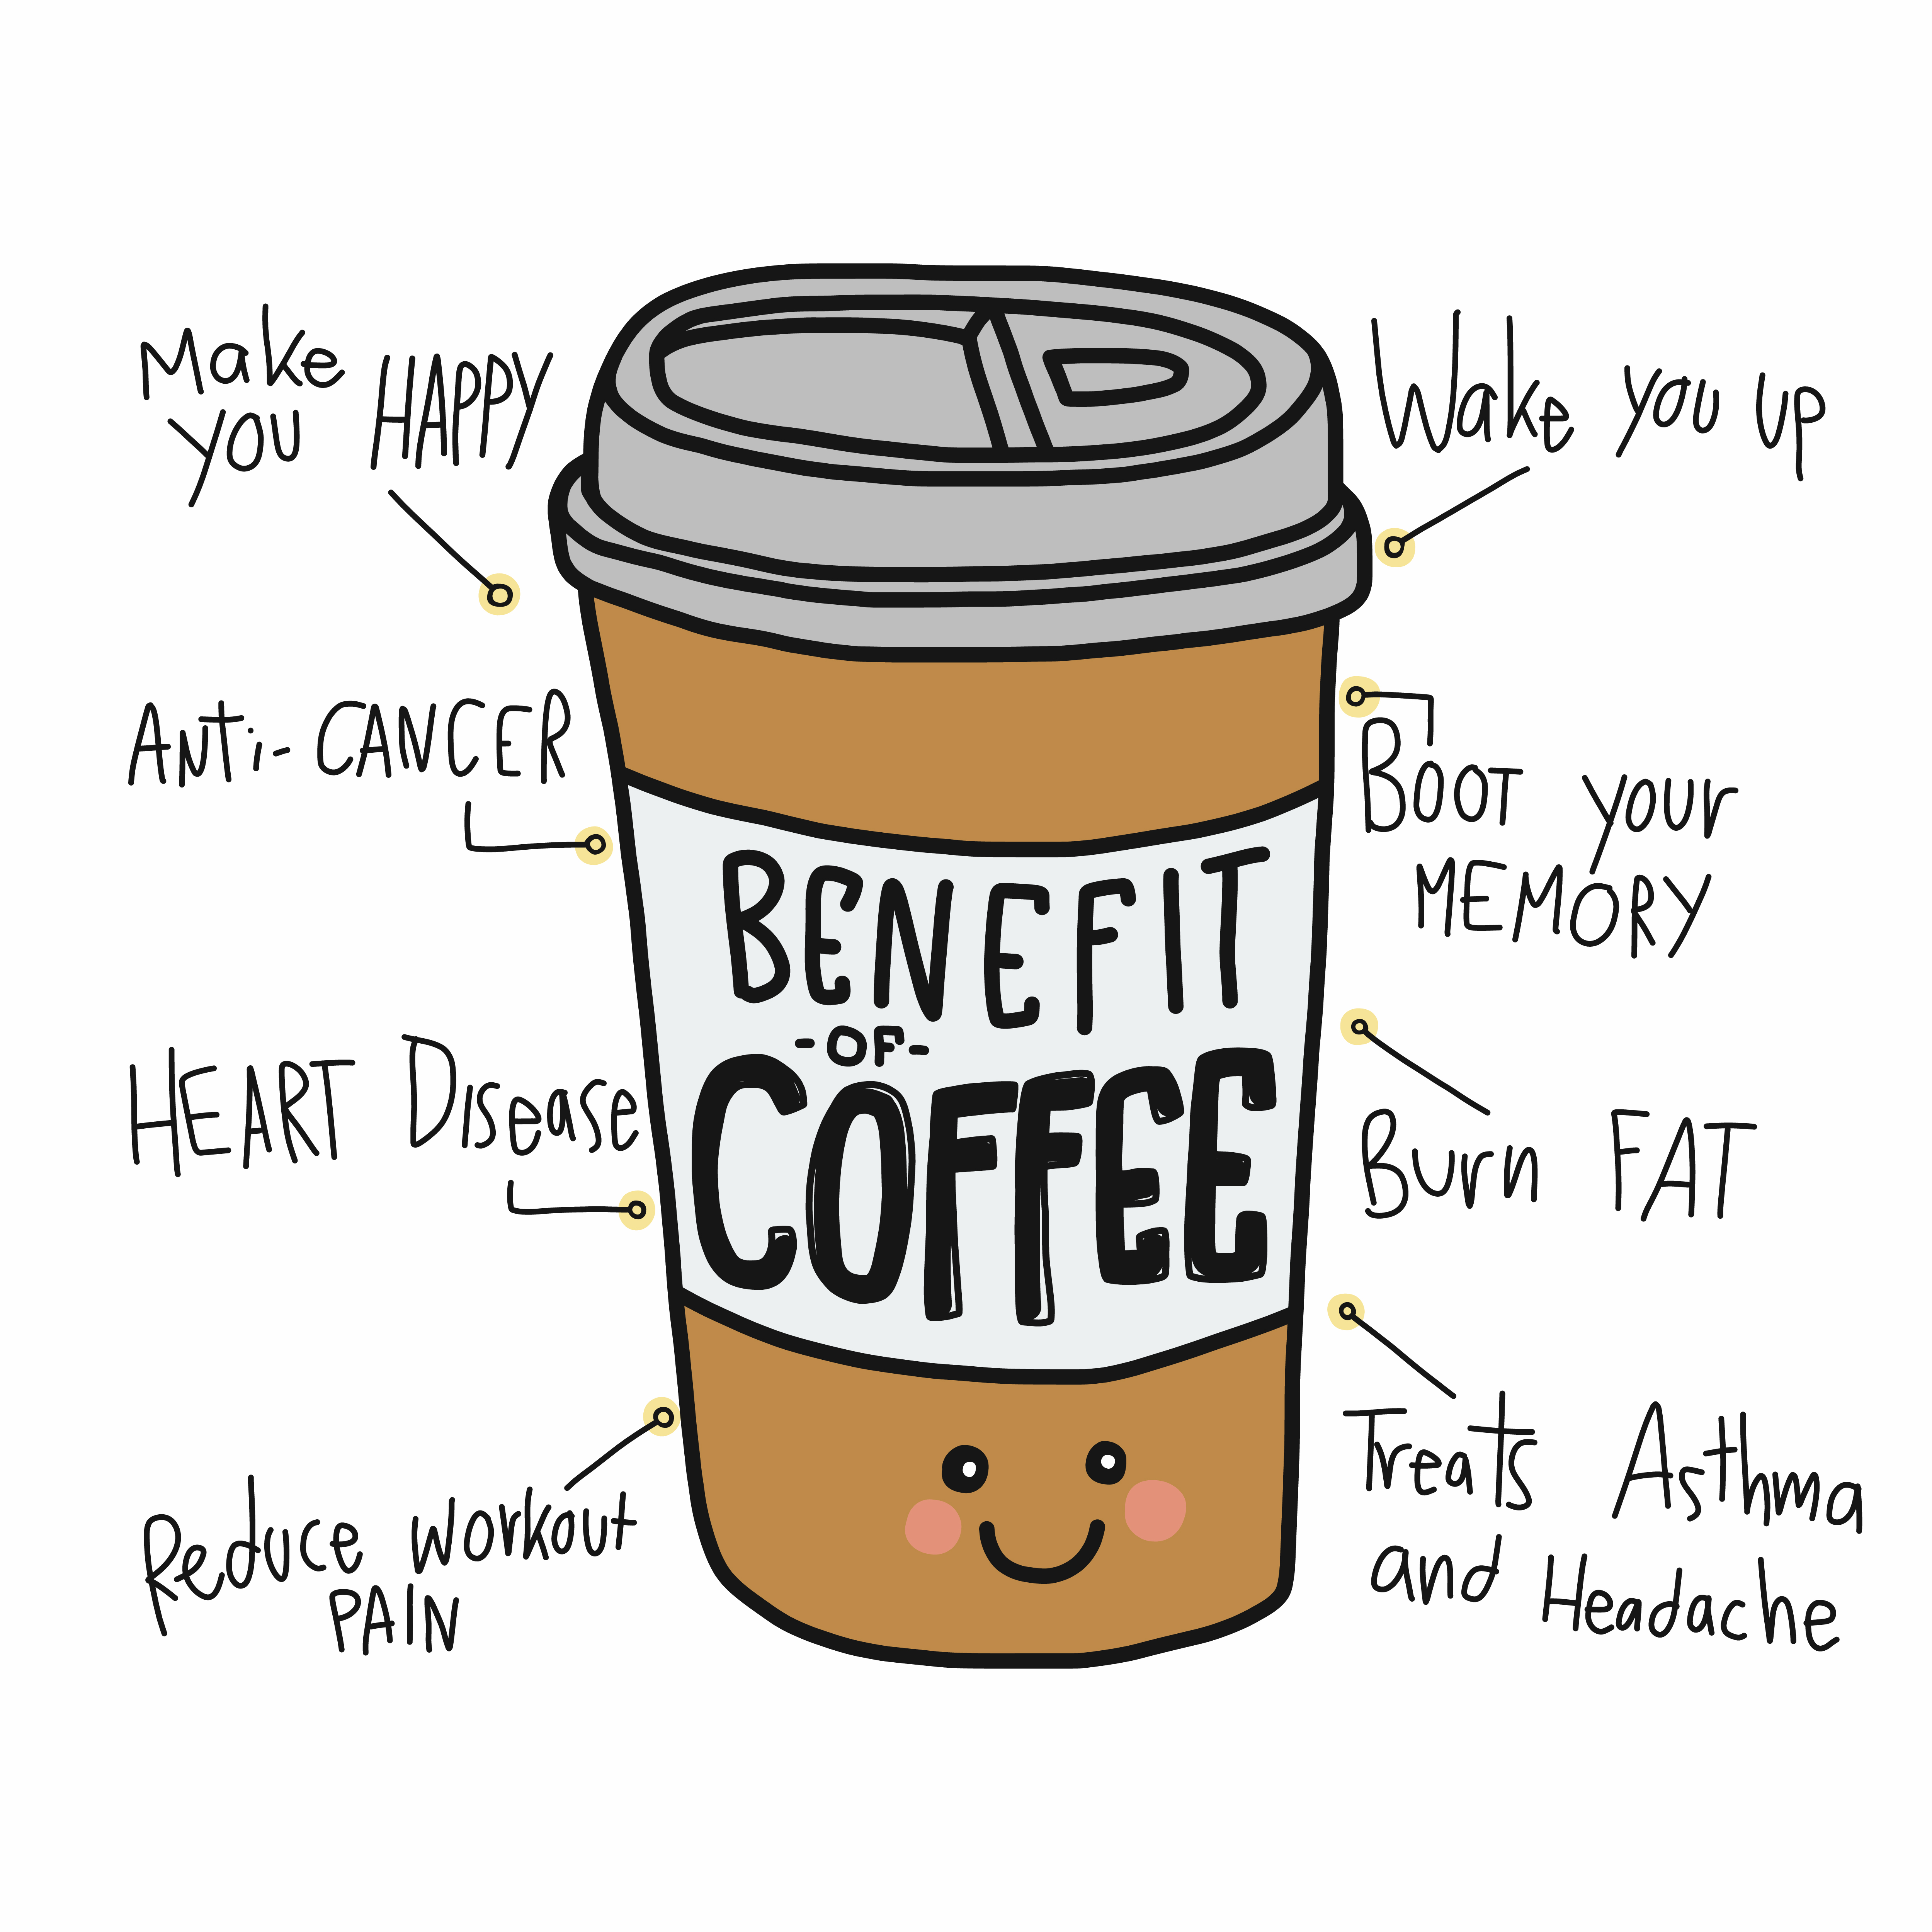 Benefits of coffee!